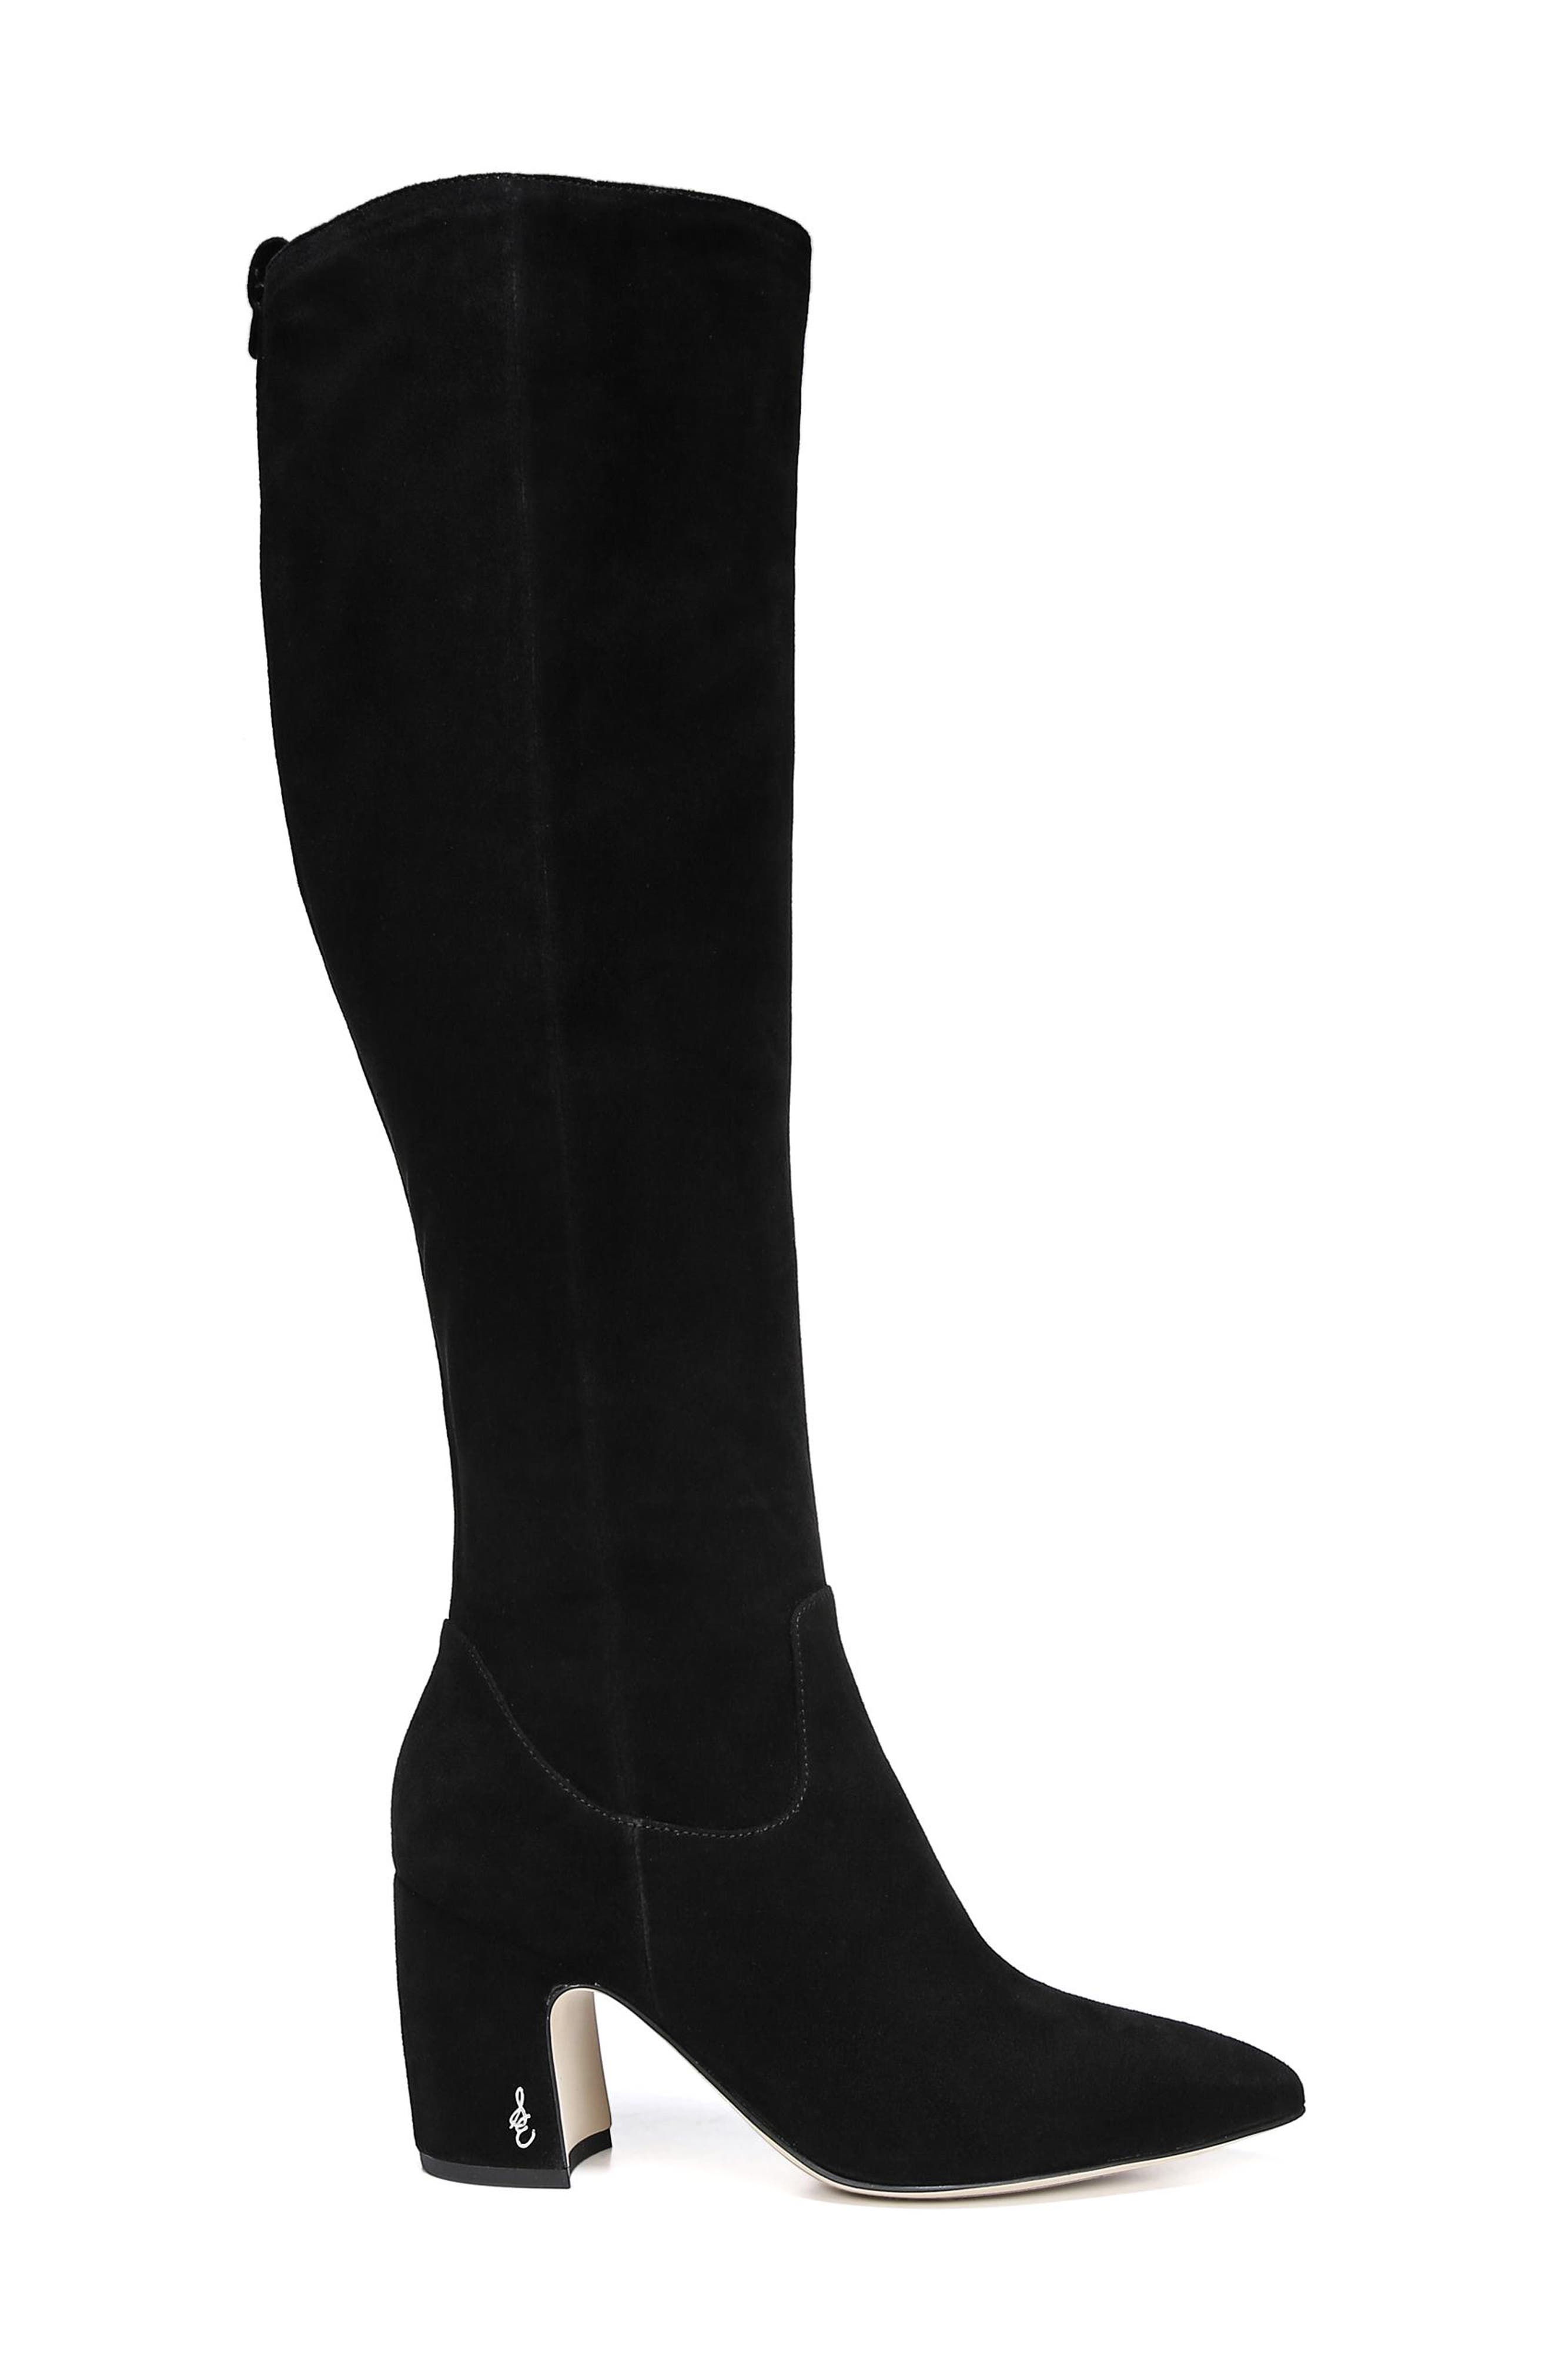 Hai Knee High Boot,                             Alternate thumbnail 3, color,                             BLACK SUEDE